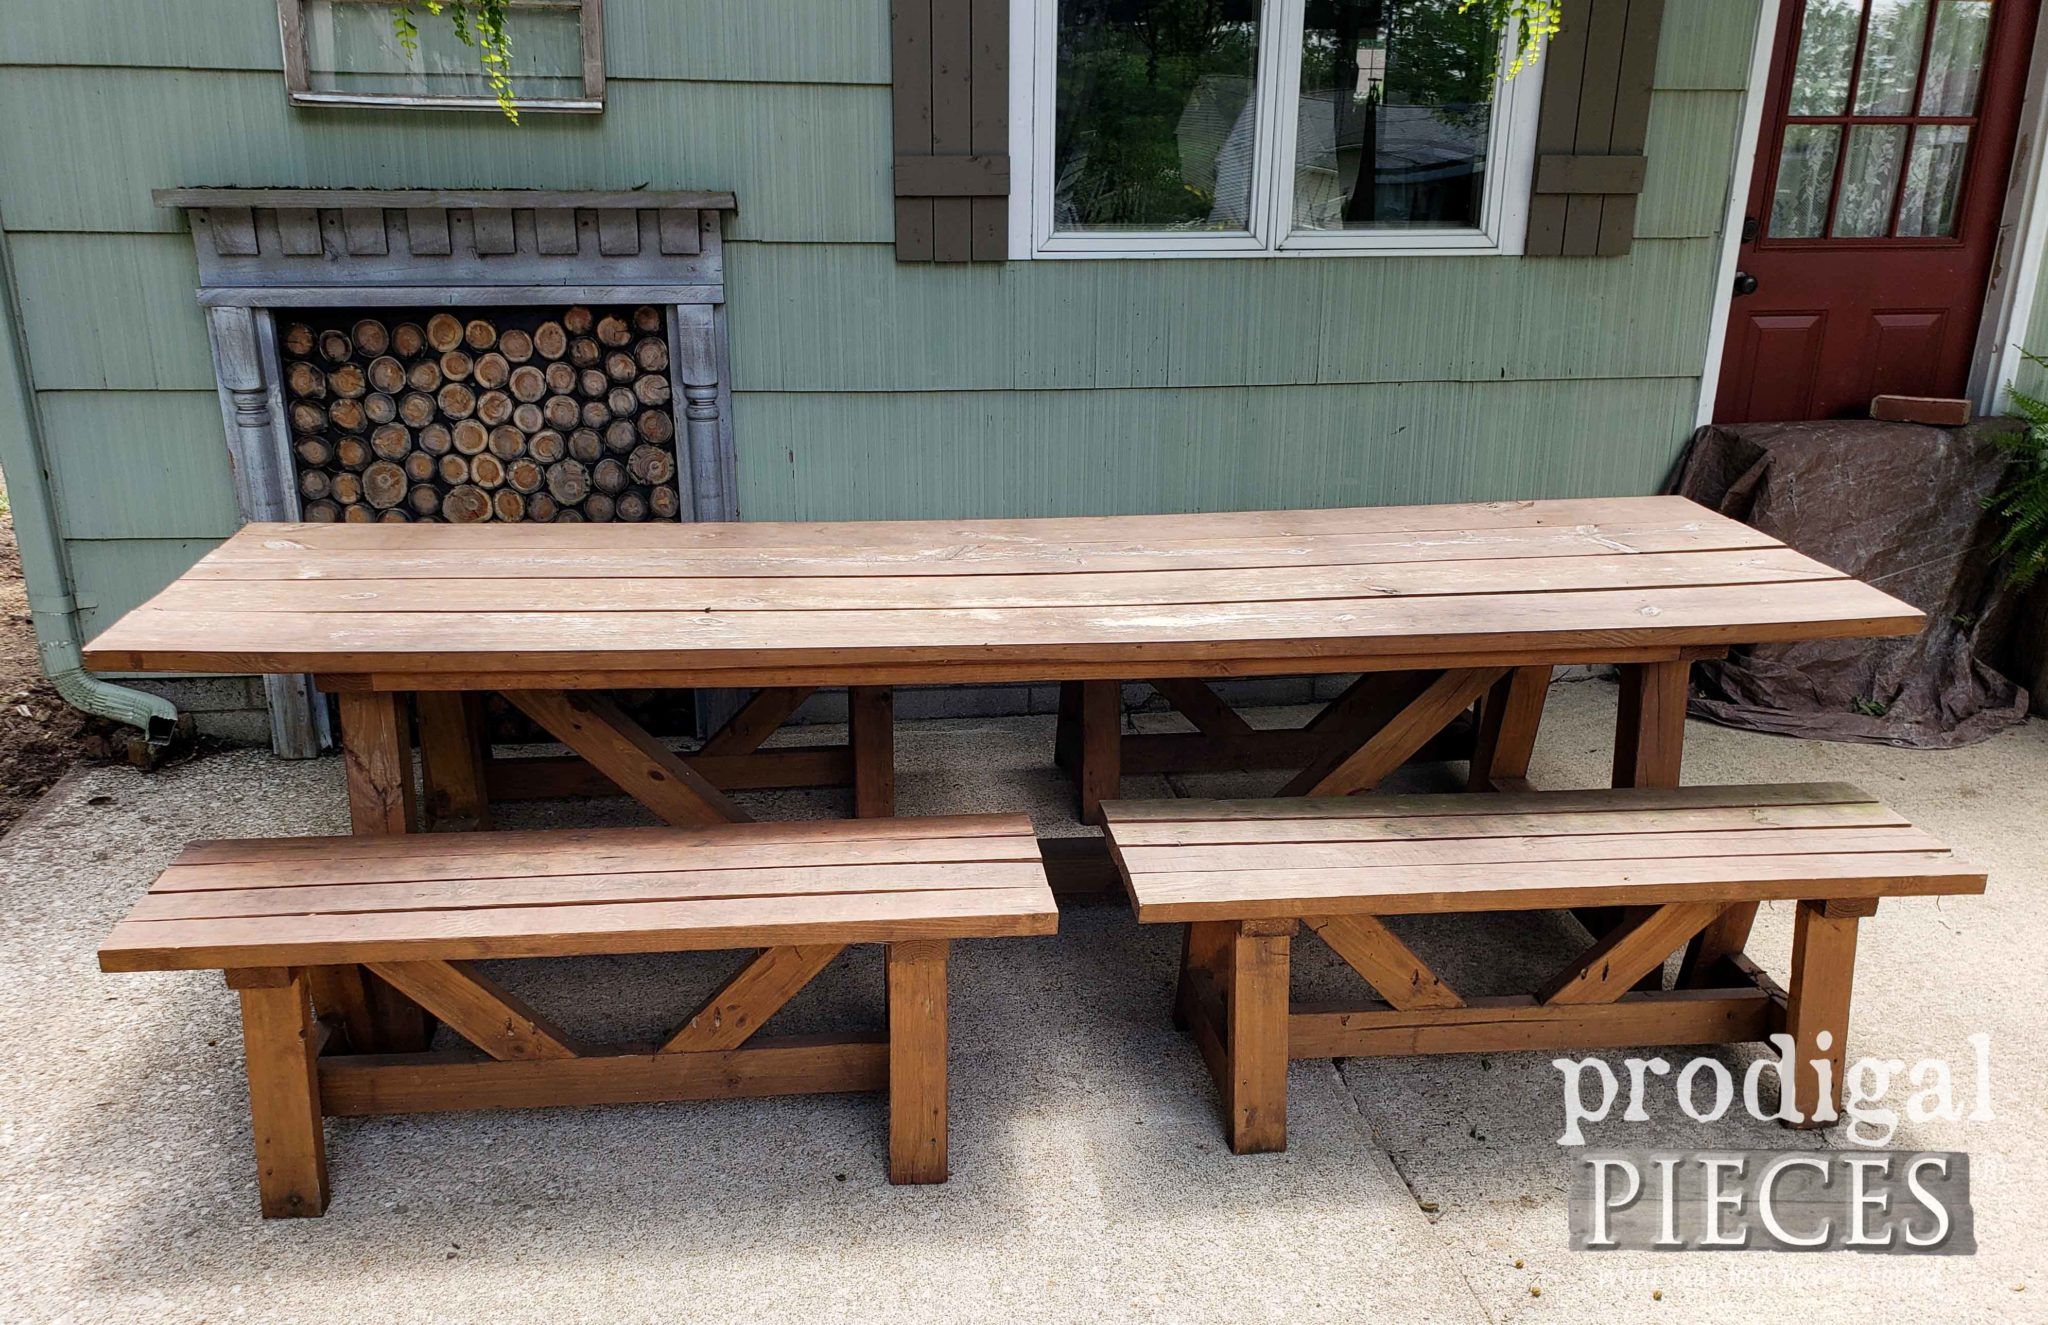 Patio Dining Table Set Before Makeover by Prodigal Pieces | prodigalpieces.com